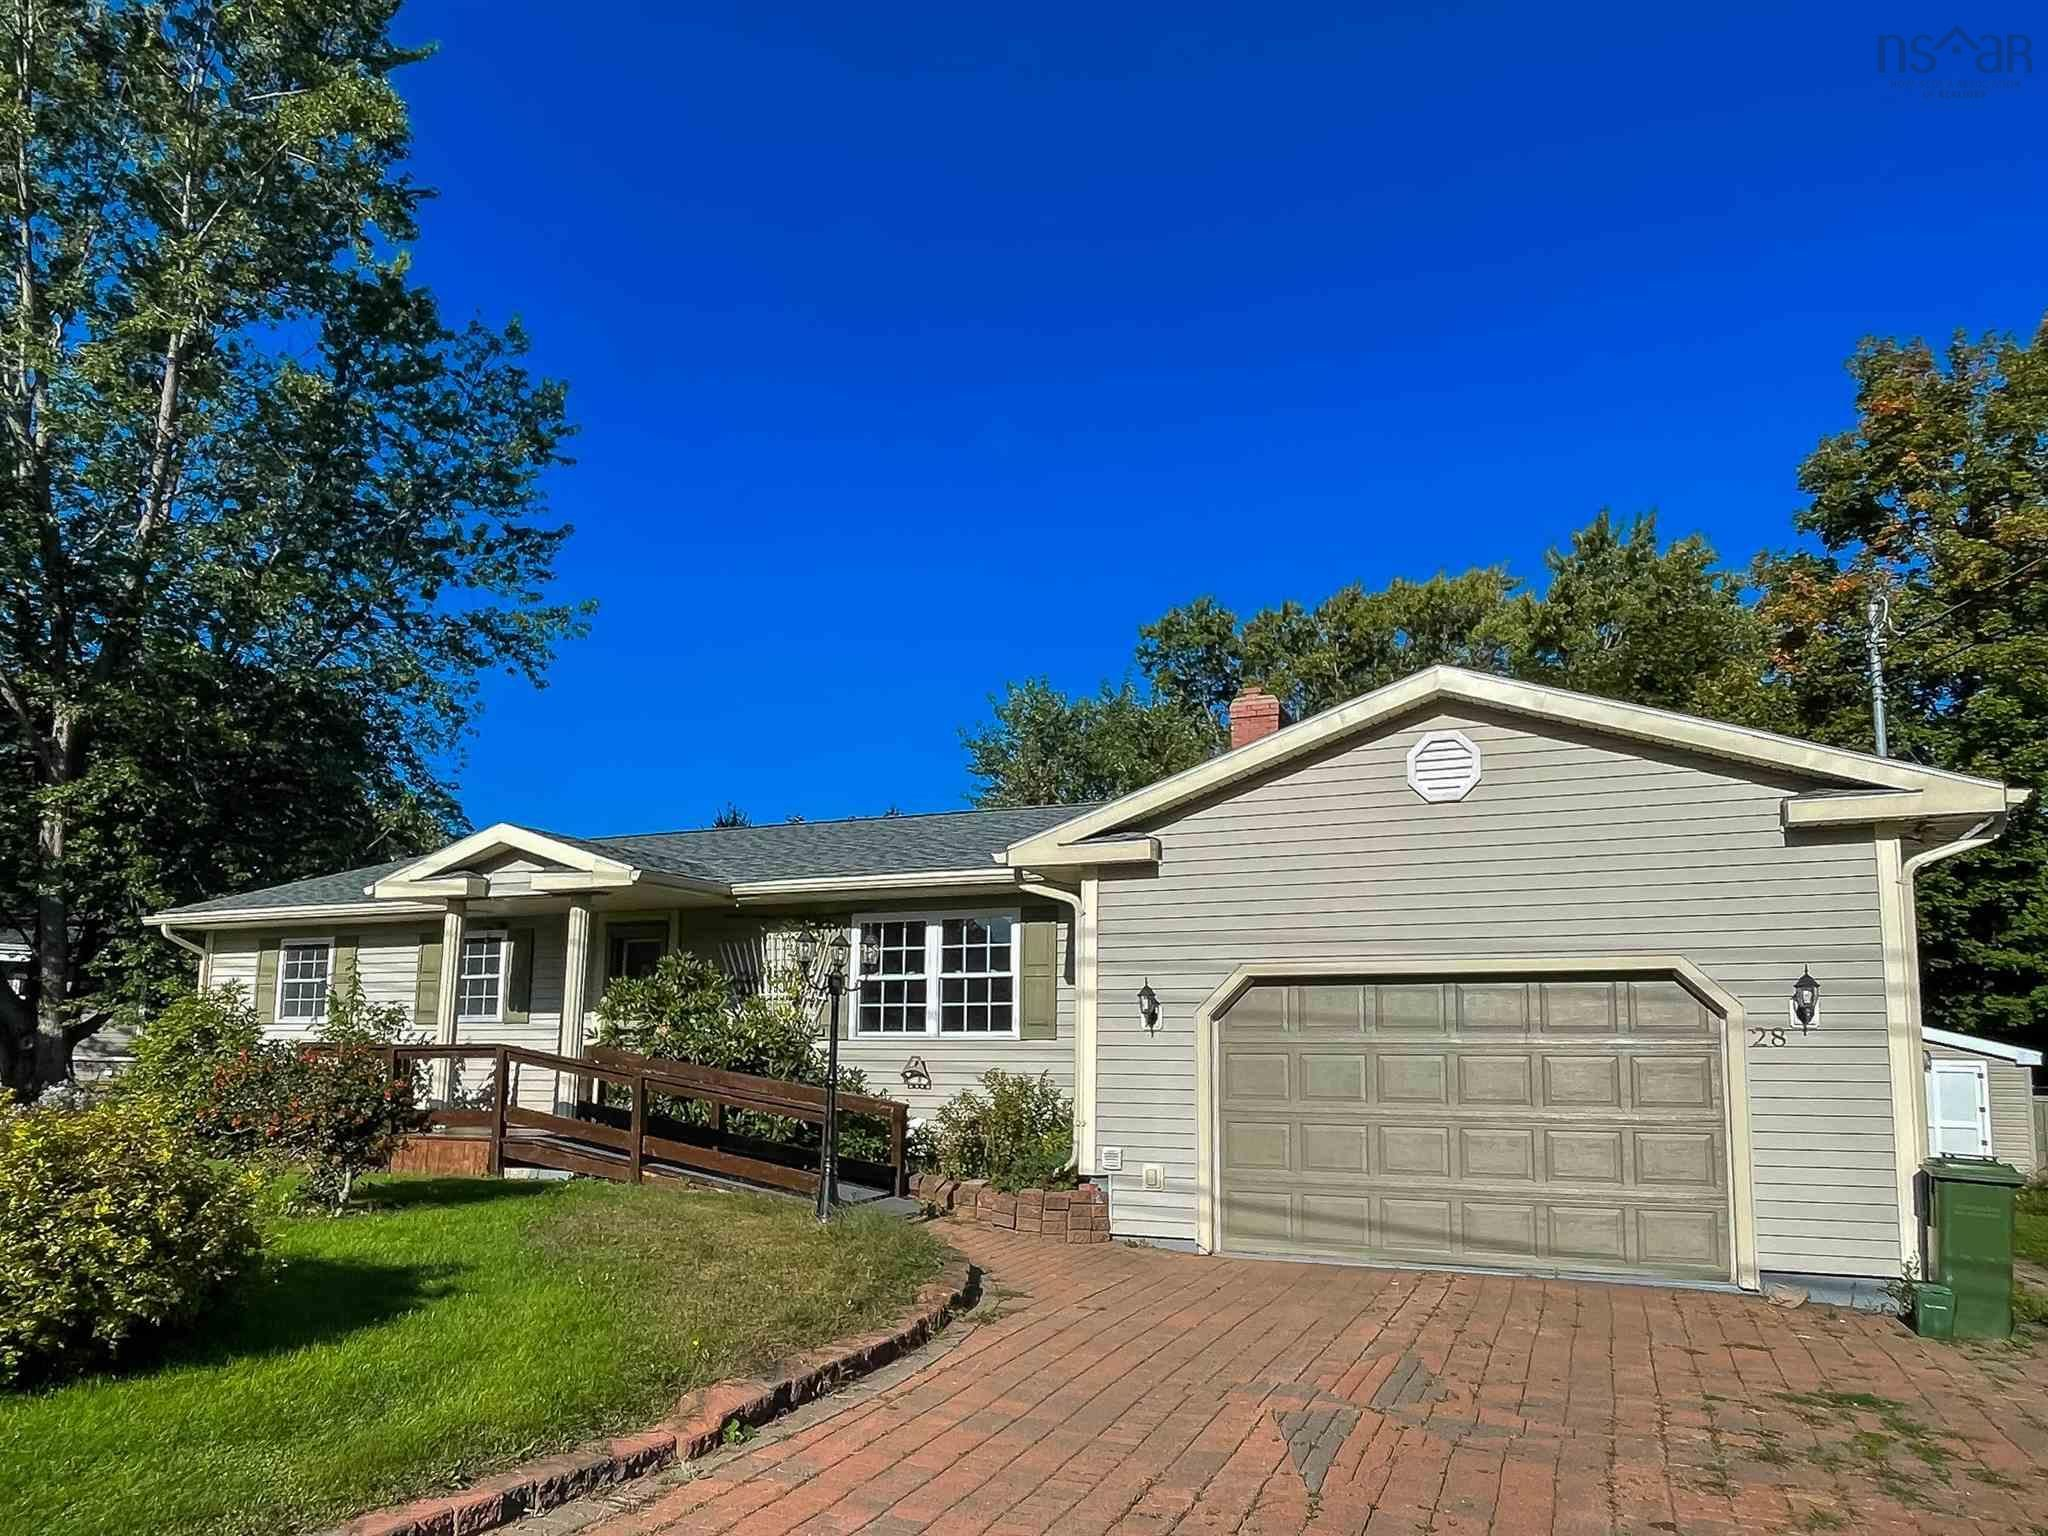 Main Photo: 28 Foster Street in Kentville: 404-Kings County Residential for sale (Annapolis Valley)  : MLS®# 202123680